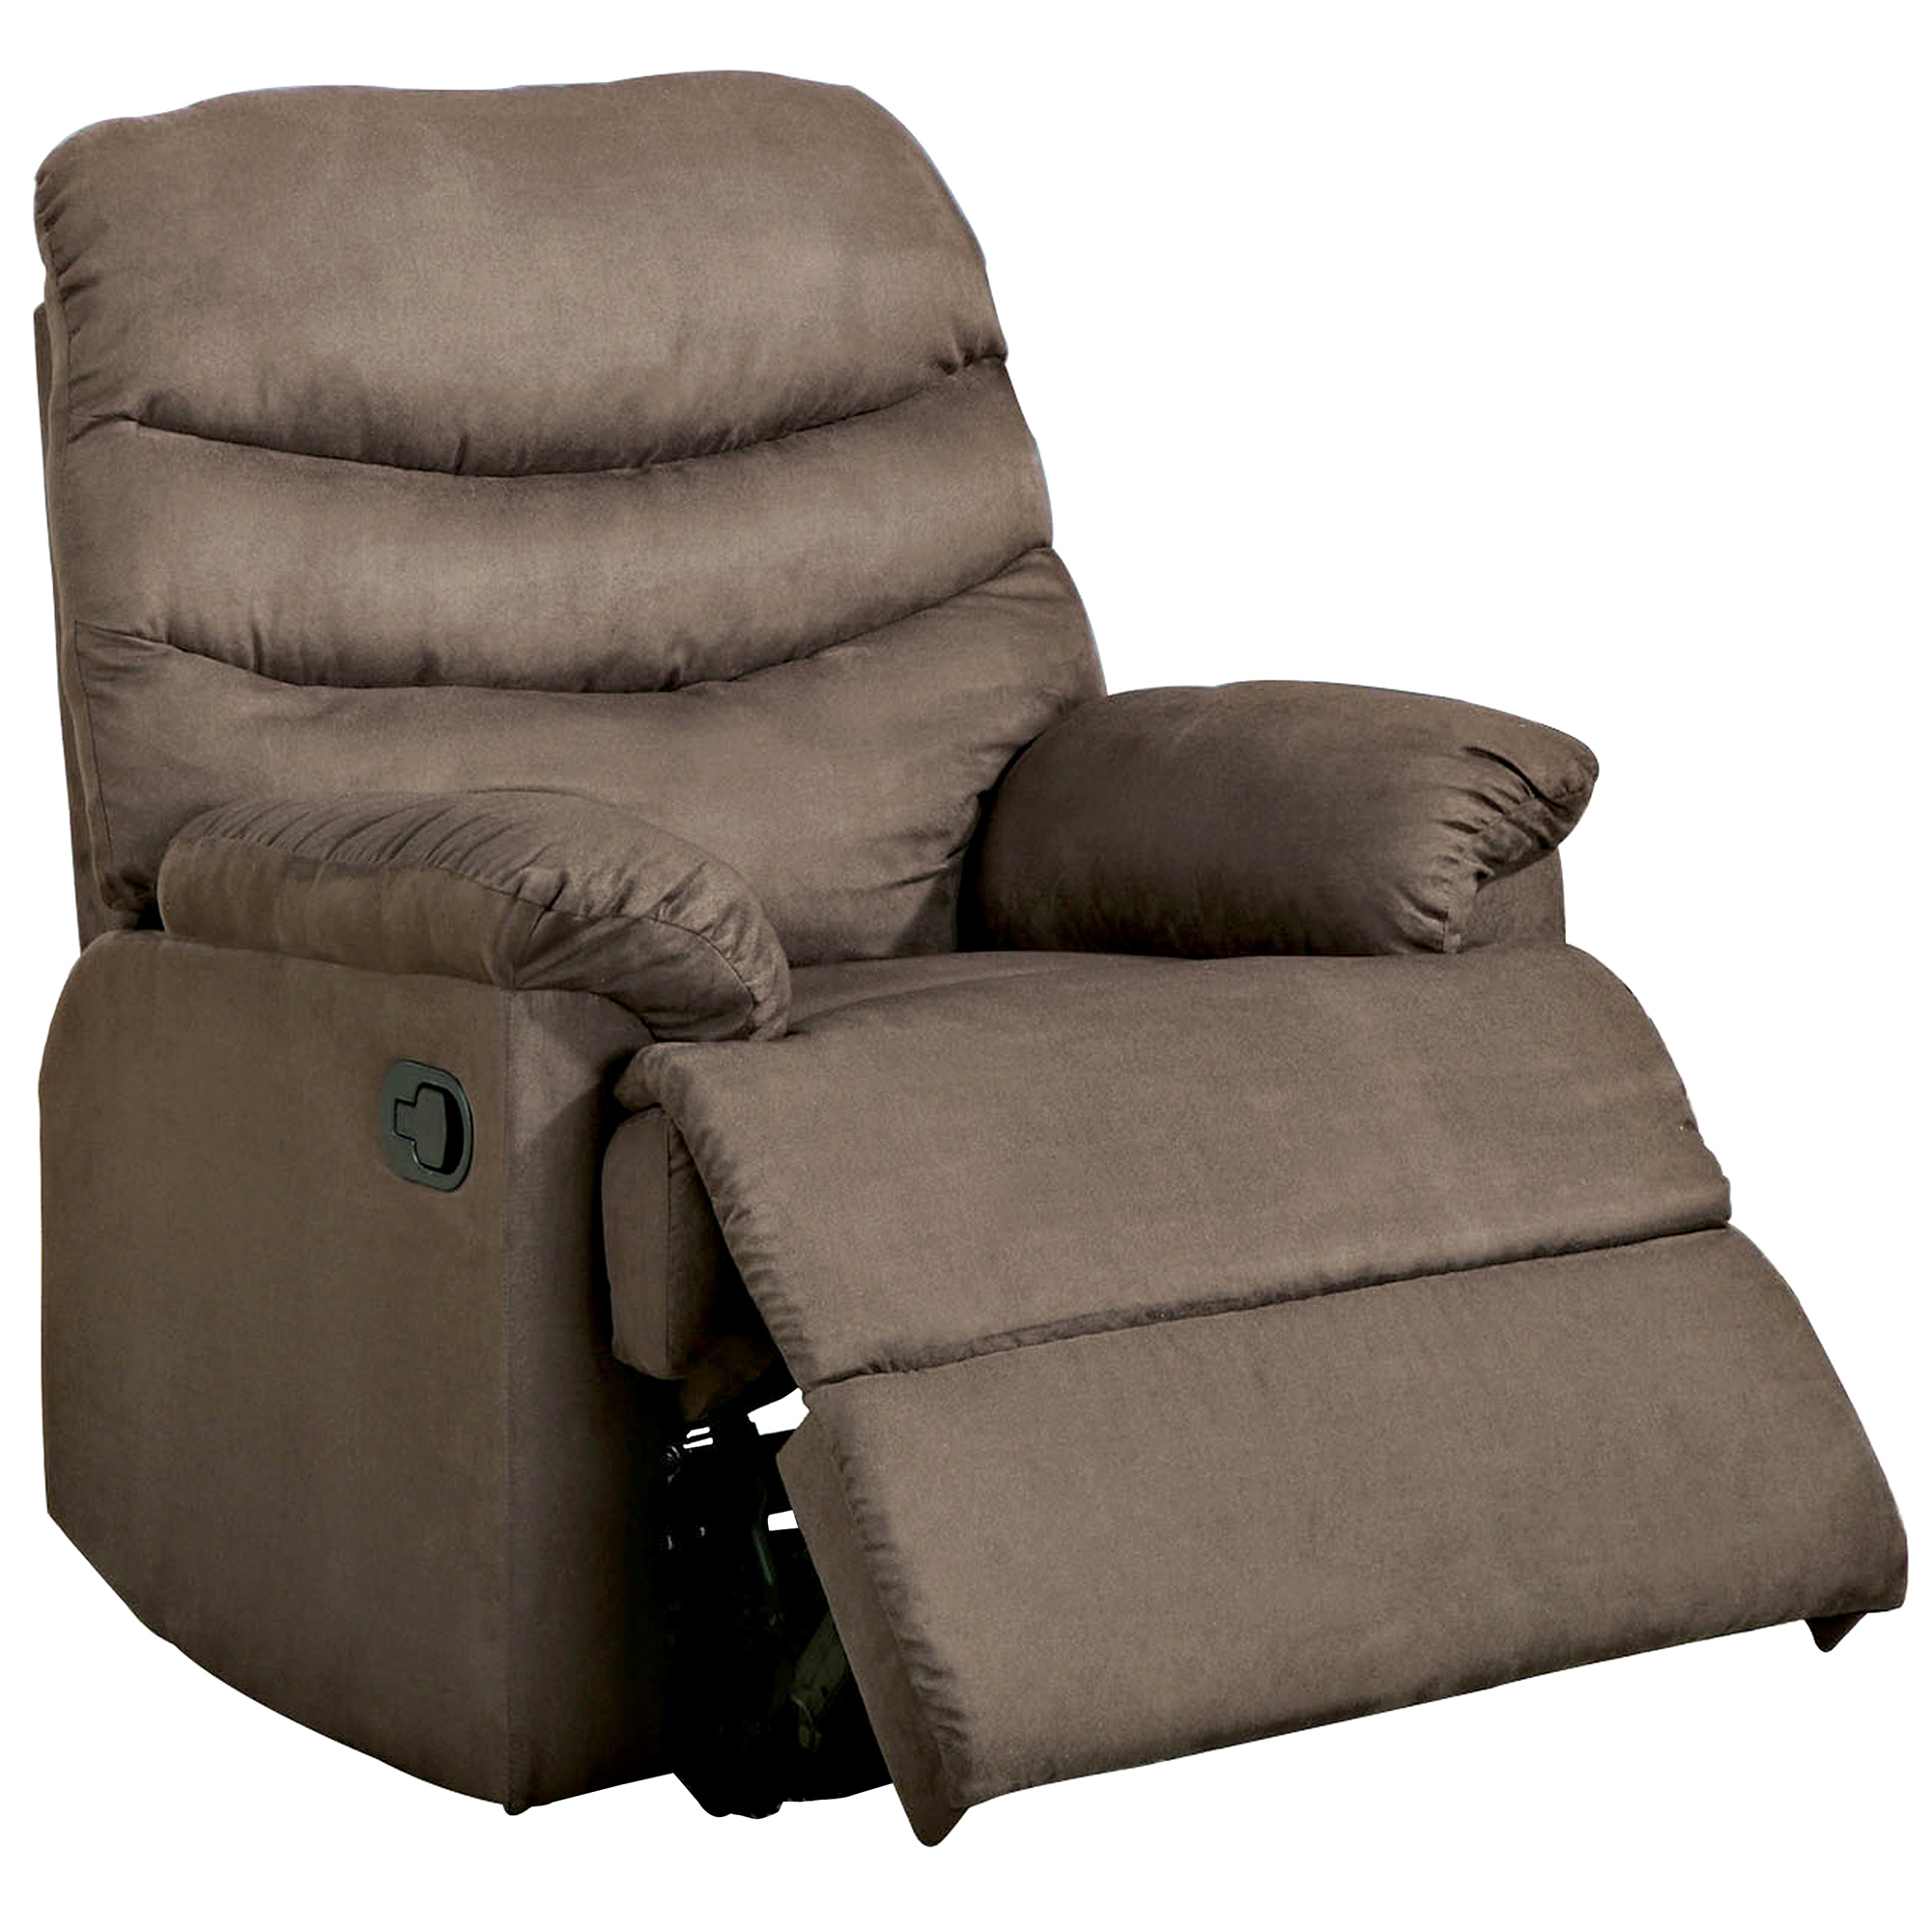 The Pleasant Valley Recliner In Light Brown Microfiber